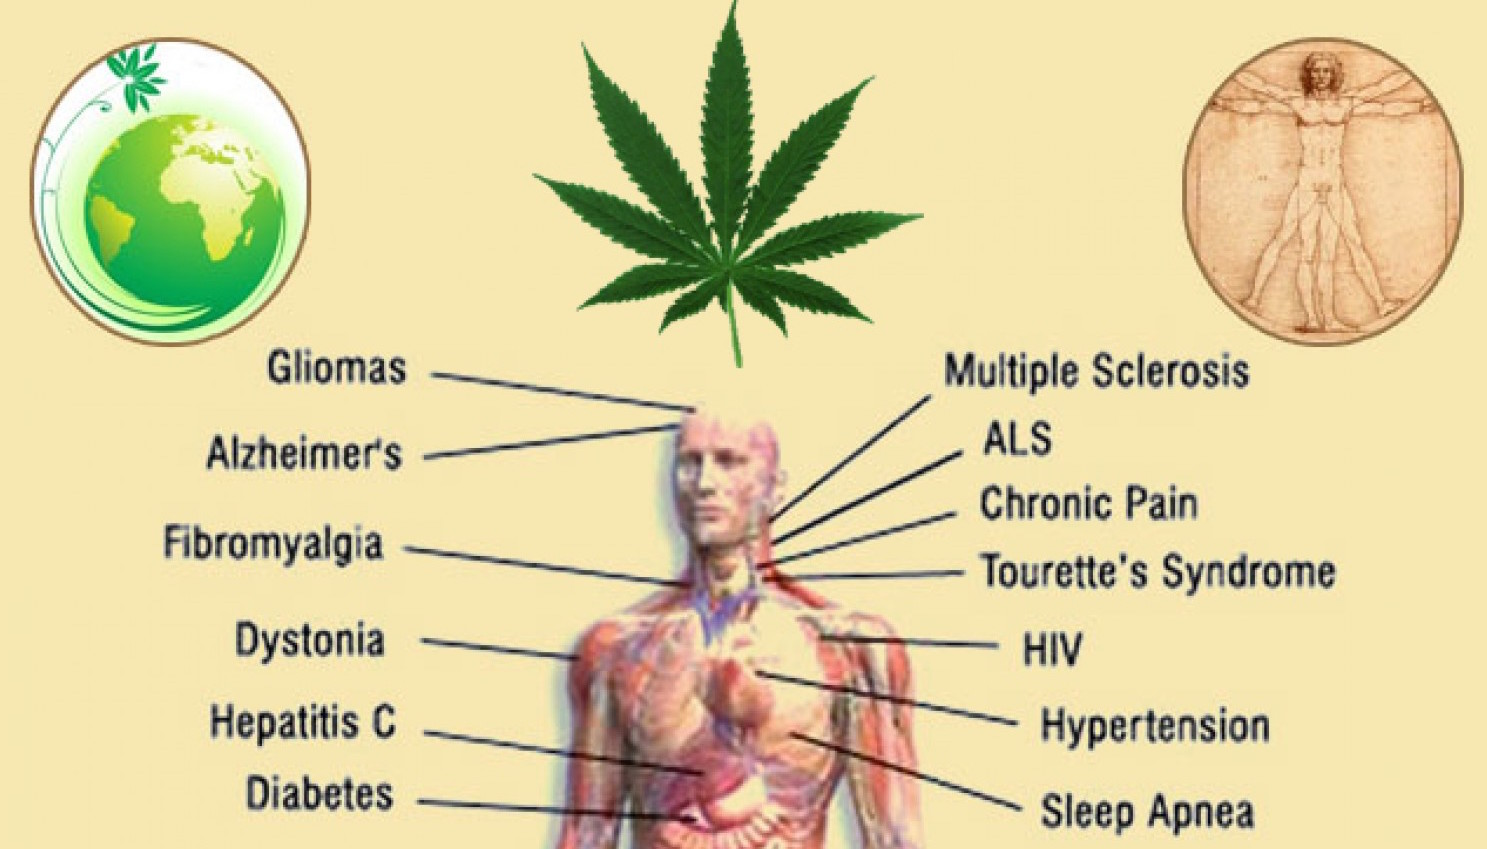 an overview of marijuana its different strains the war on drugs and its medicinal benefits Medical marijuana benefits knowledge to blow your mind point is, no matter what your condition is, using marijuana medicinally could alter your view of your world taking that one step further, high cbd strains could provide you with the relief you need, without the side effects that would limit its.